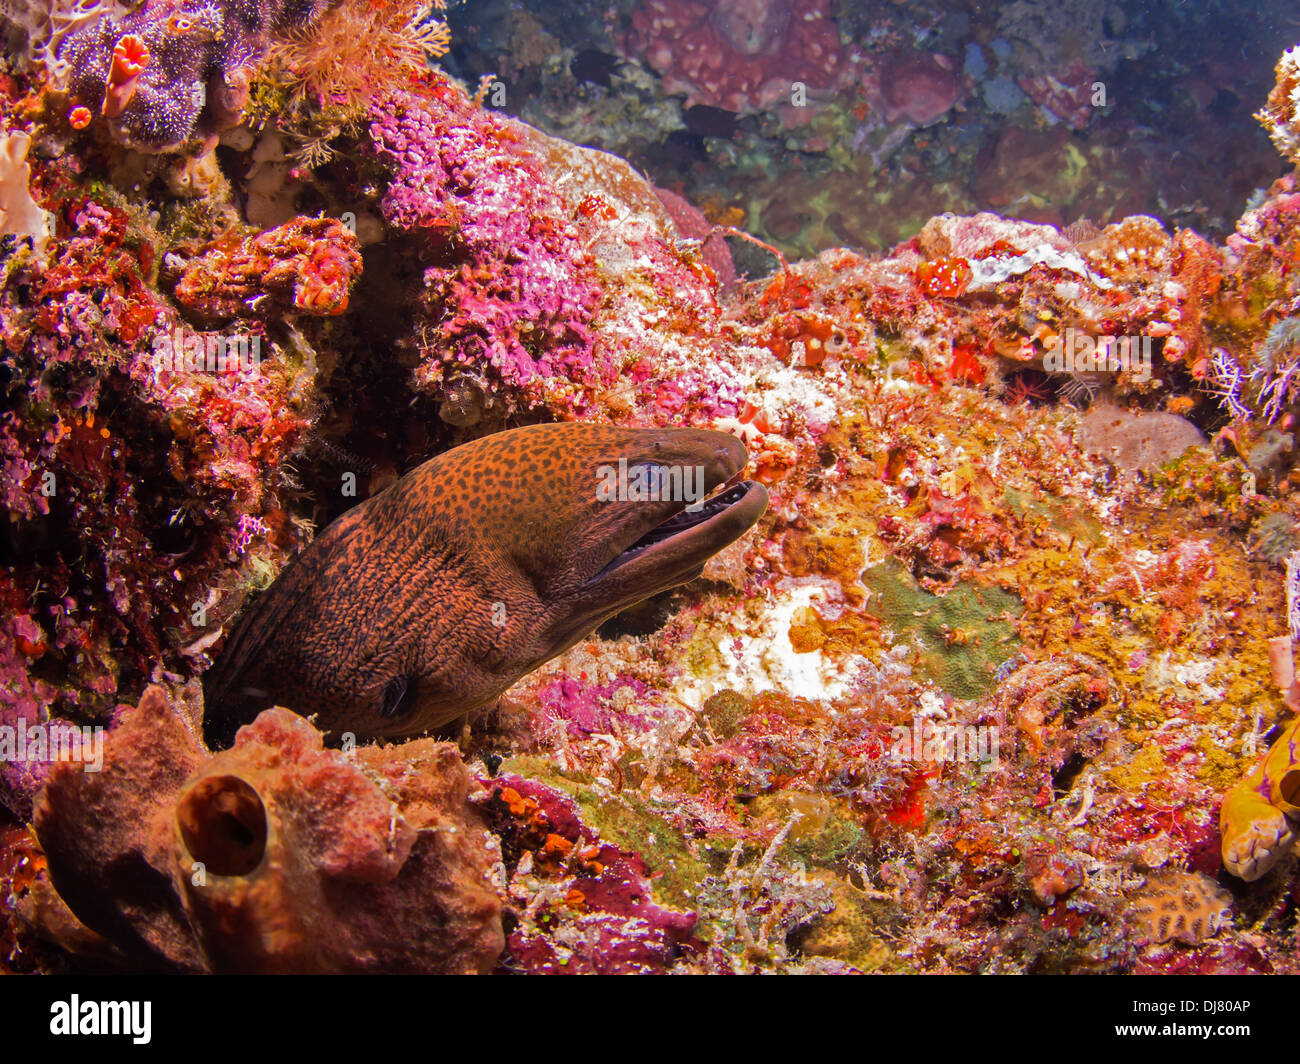 Giant moray eel on a colorful coral reef at Bunaken, Indonesia - Stock Image